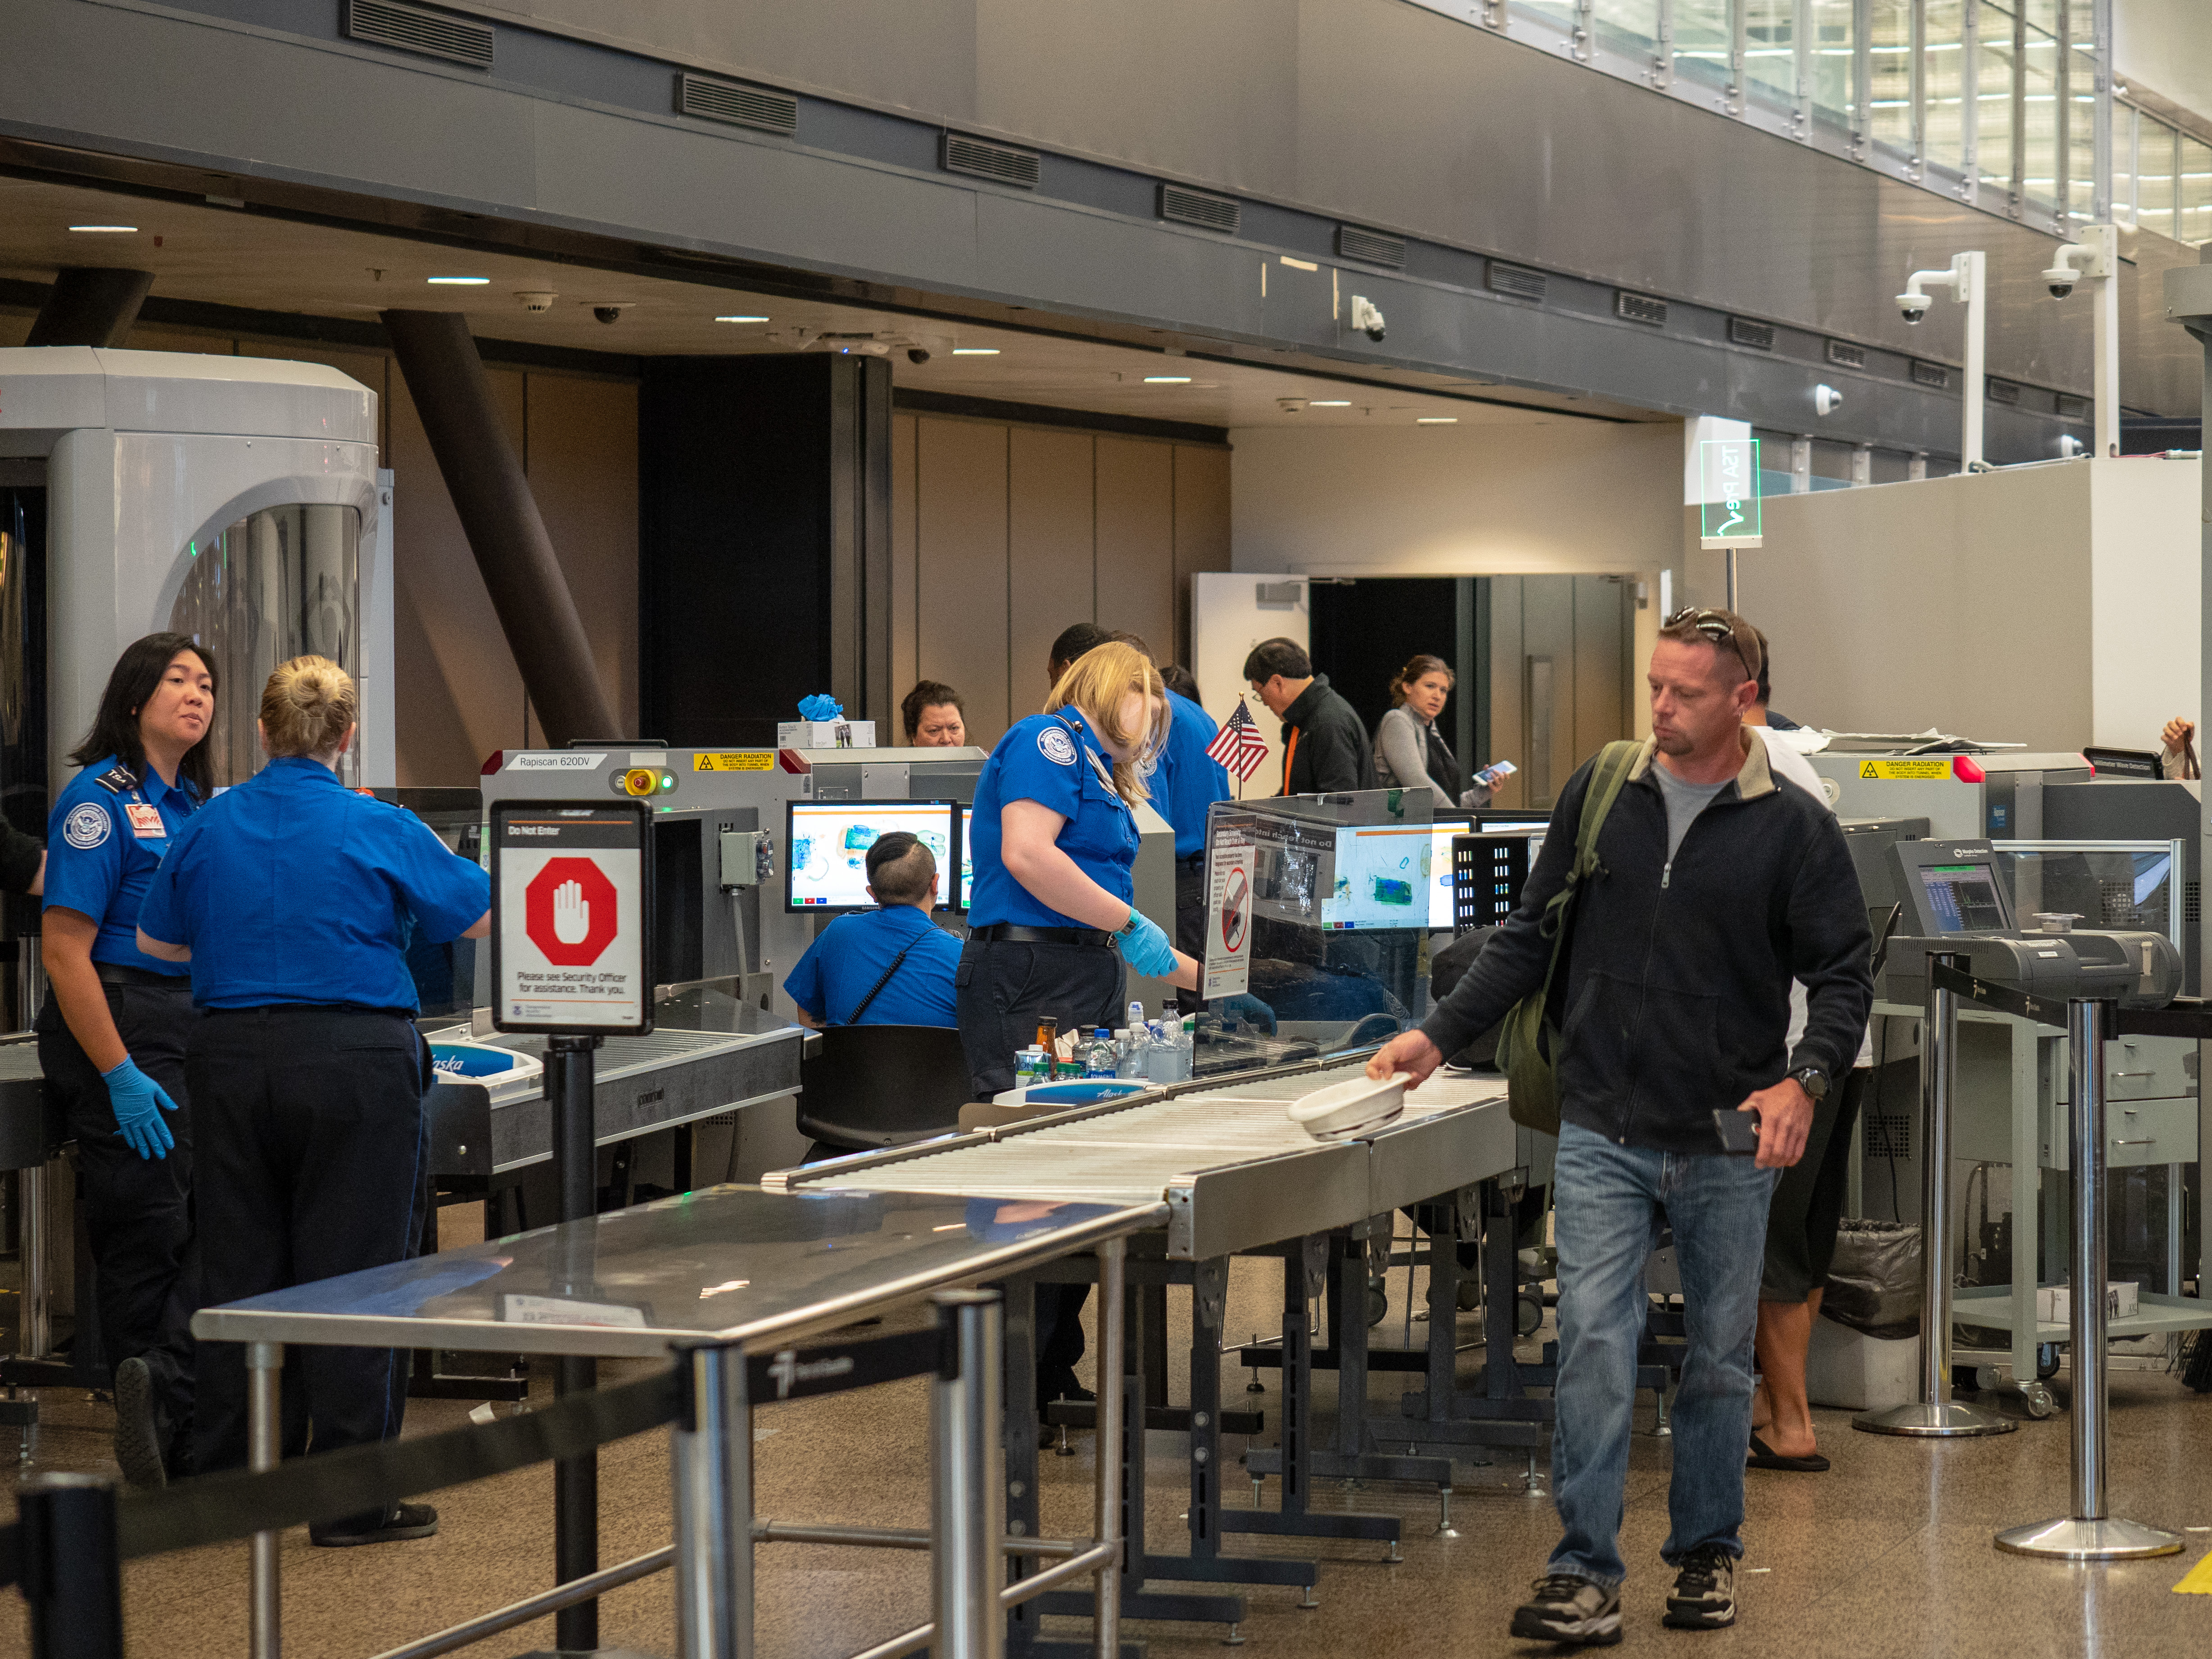 Man passes though Transportation Security Administration TSA security checkpoint at Seattle-Tacoma International Airport